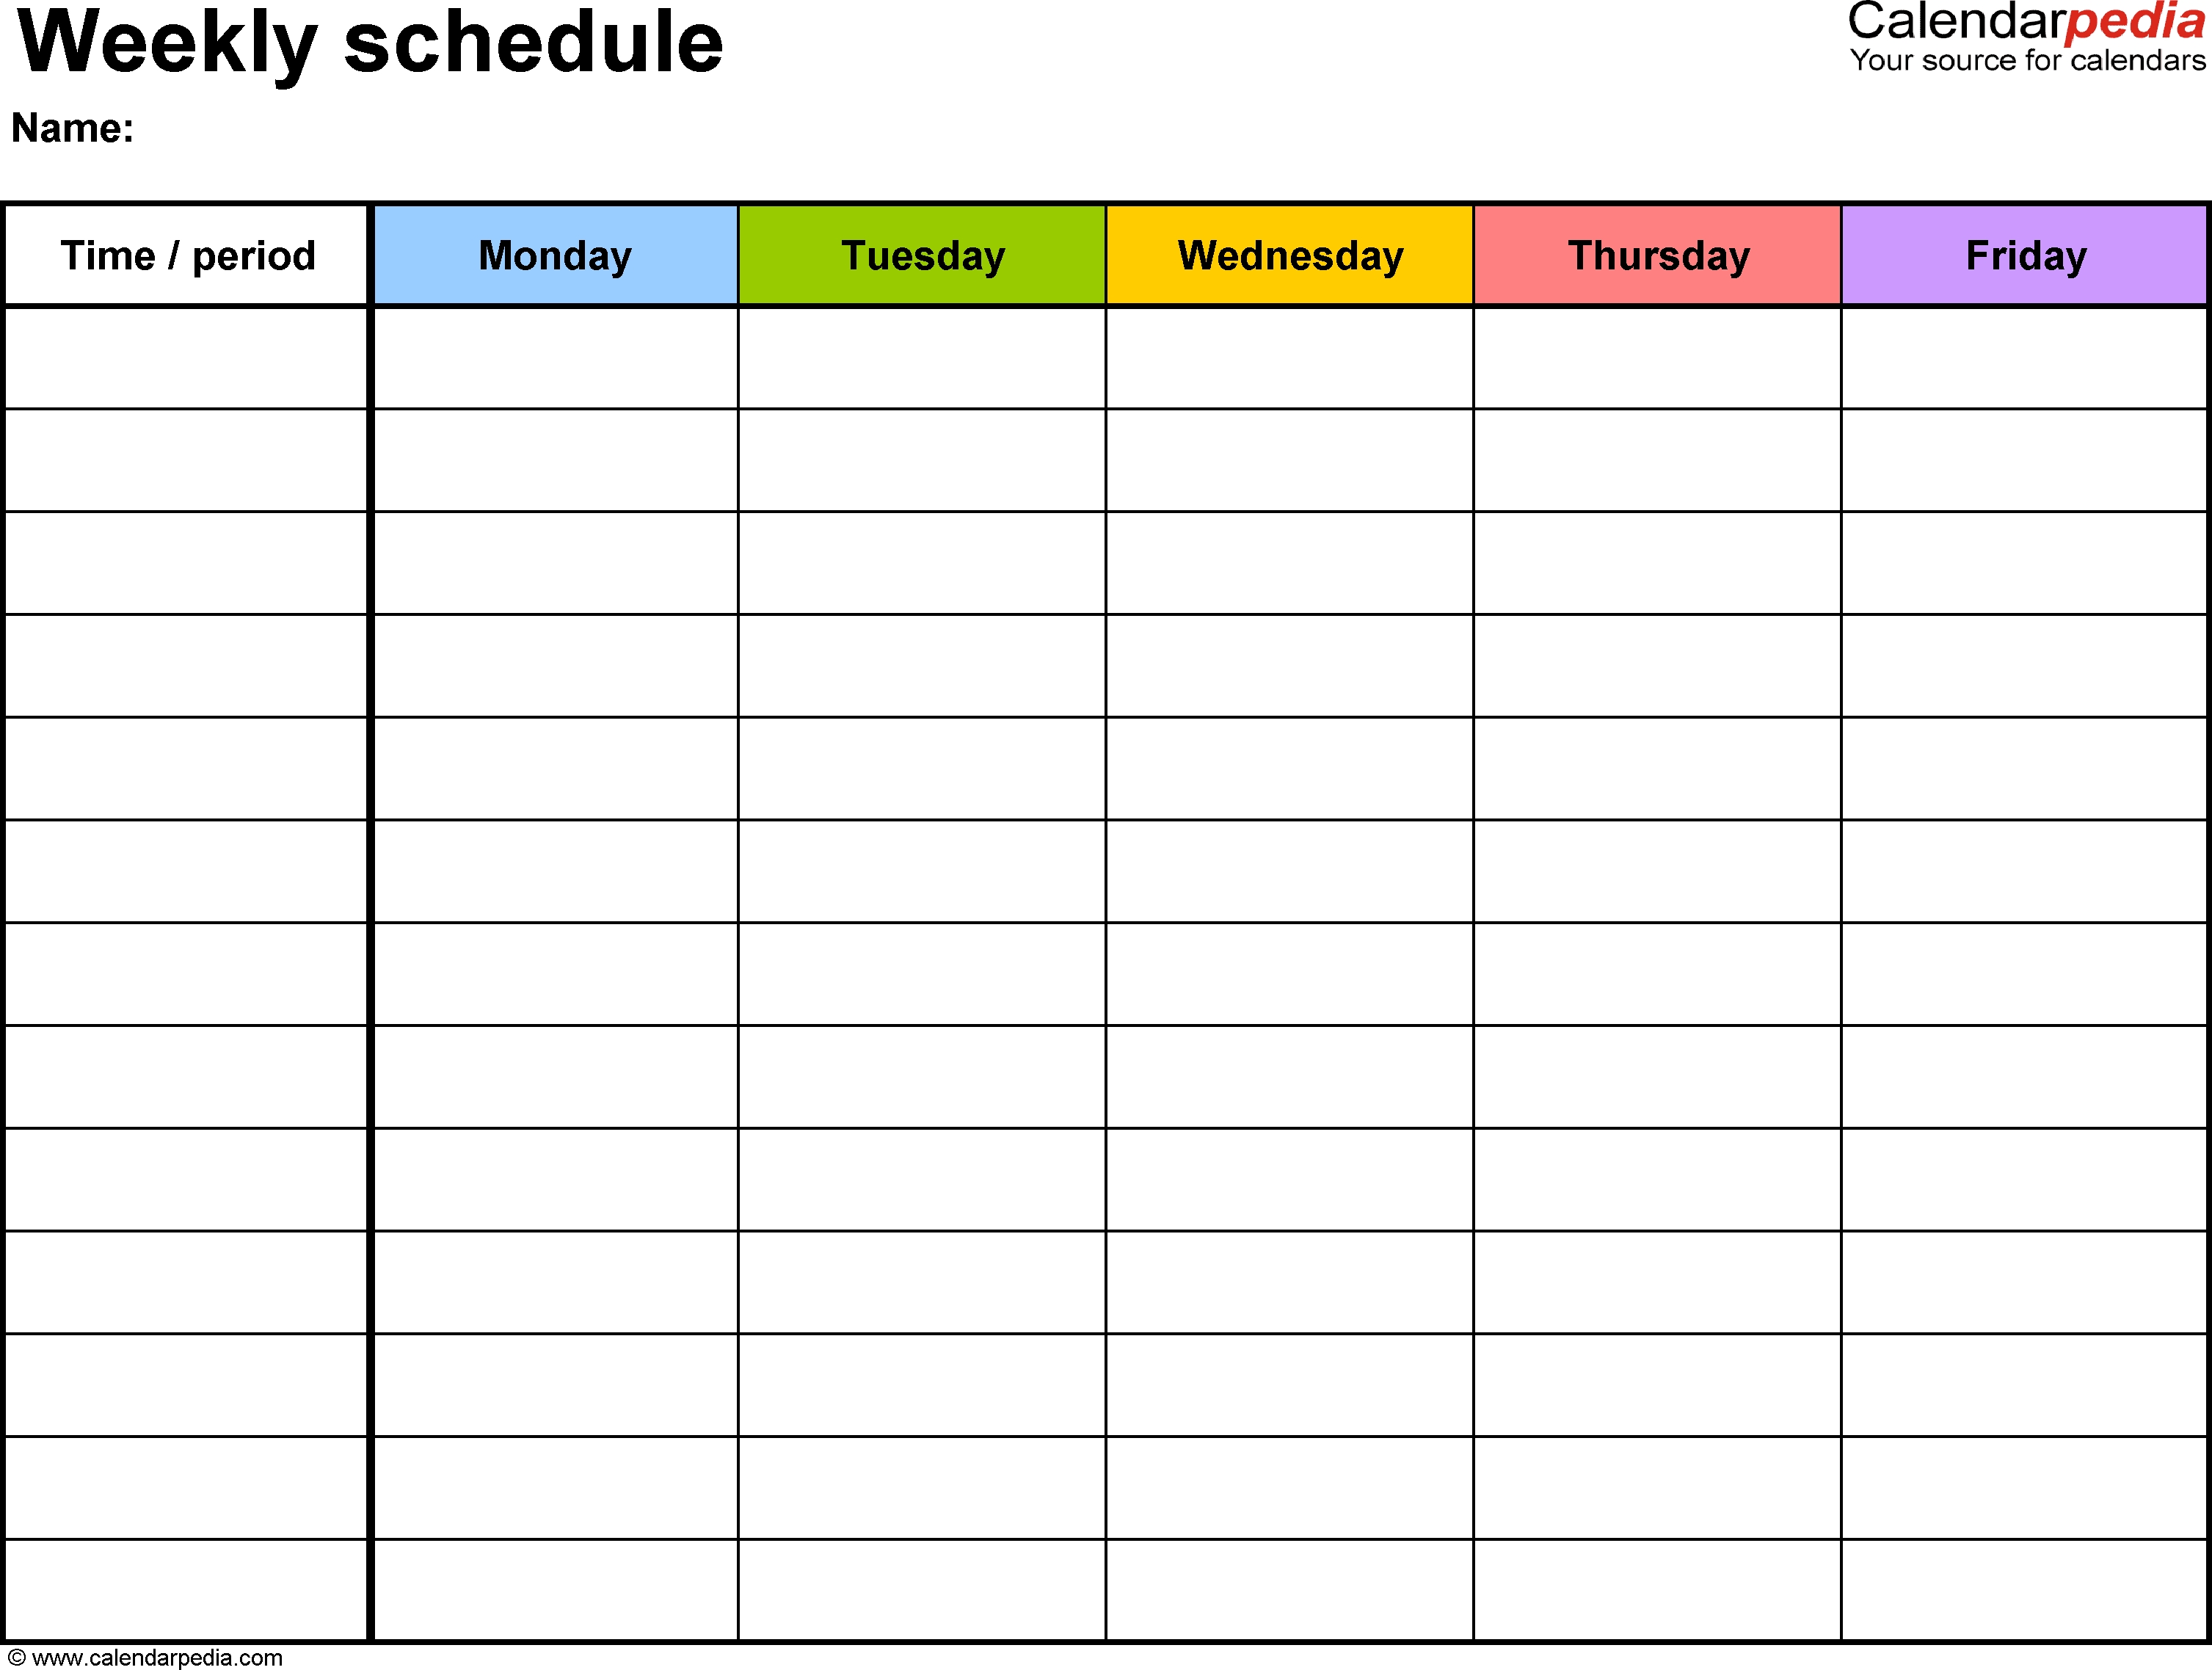 Free Weekly Schedule Templates For Excel - 18 Templates for Weekly Checklist Template Excel 24119